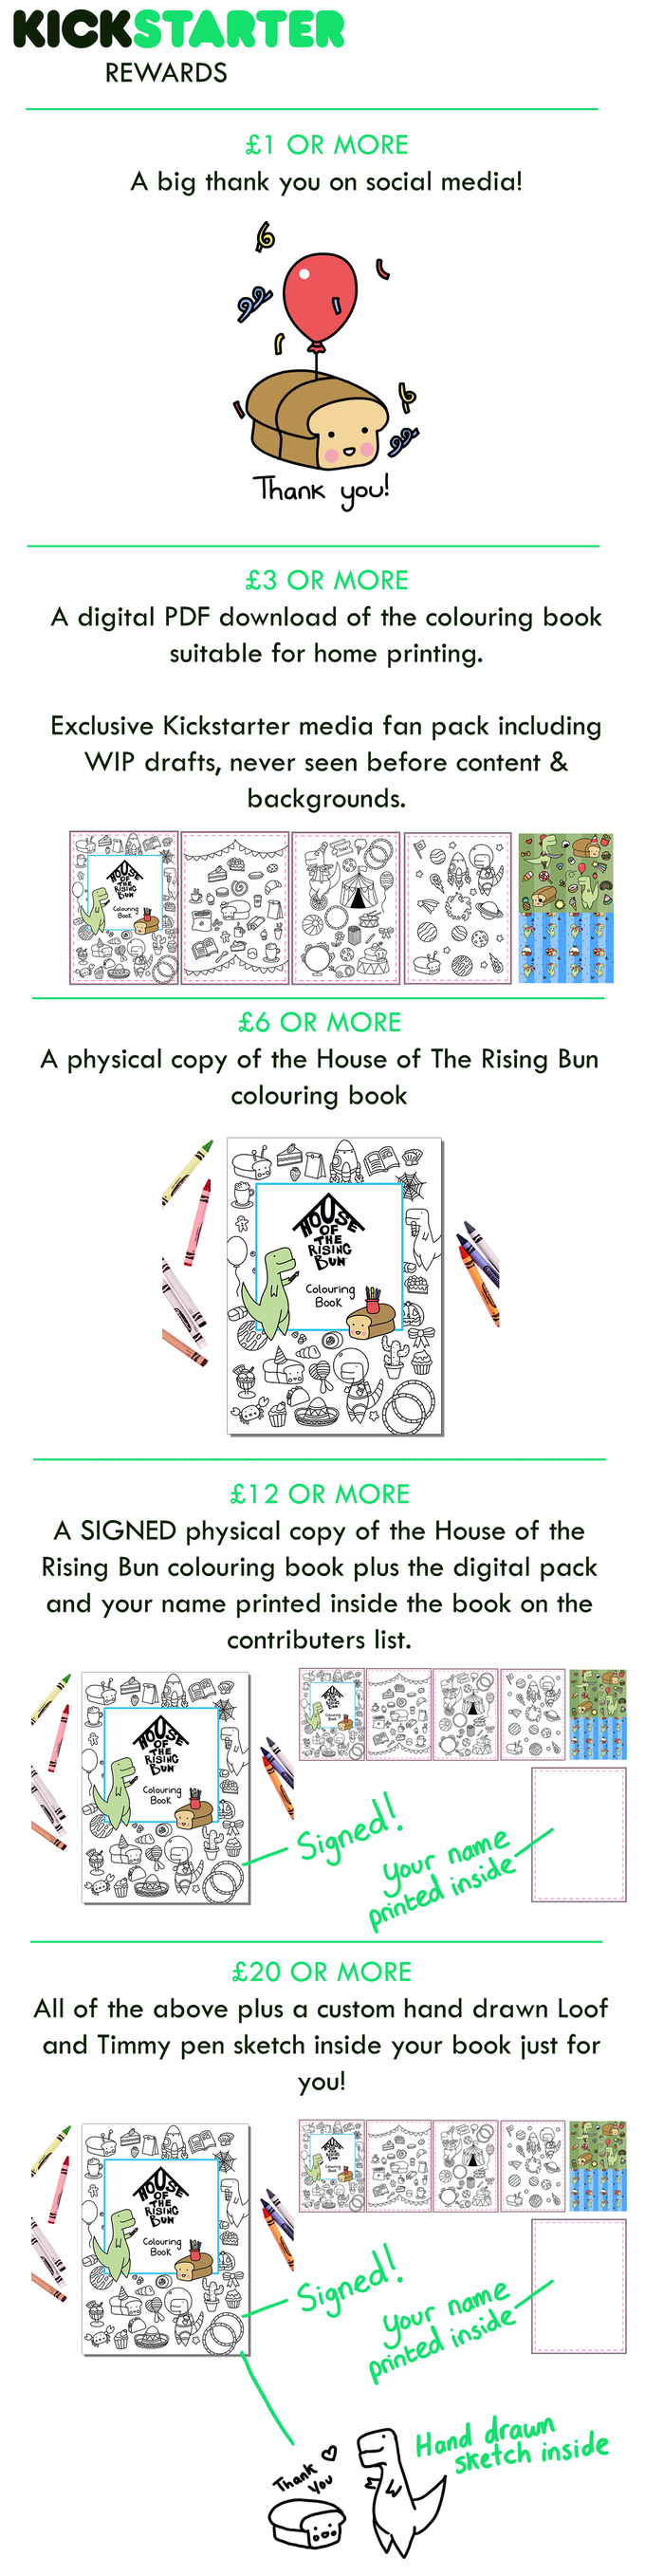 The Money From Your Generous Pledges Will Go Towards Covering Cost Of Printing Colouring Book Producing Adorably Cute